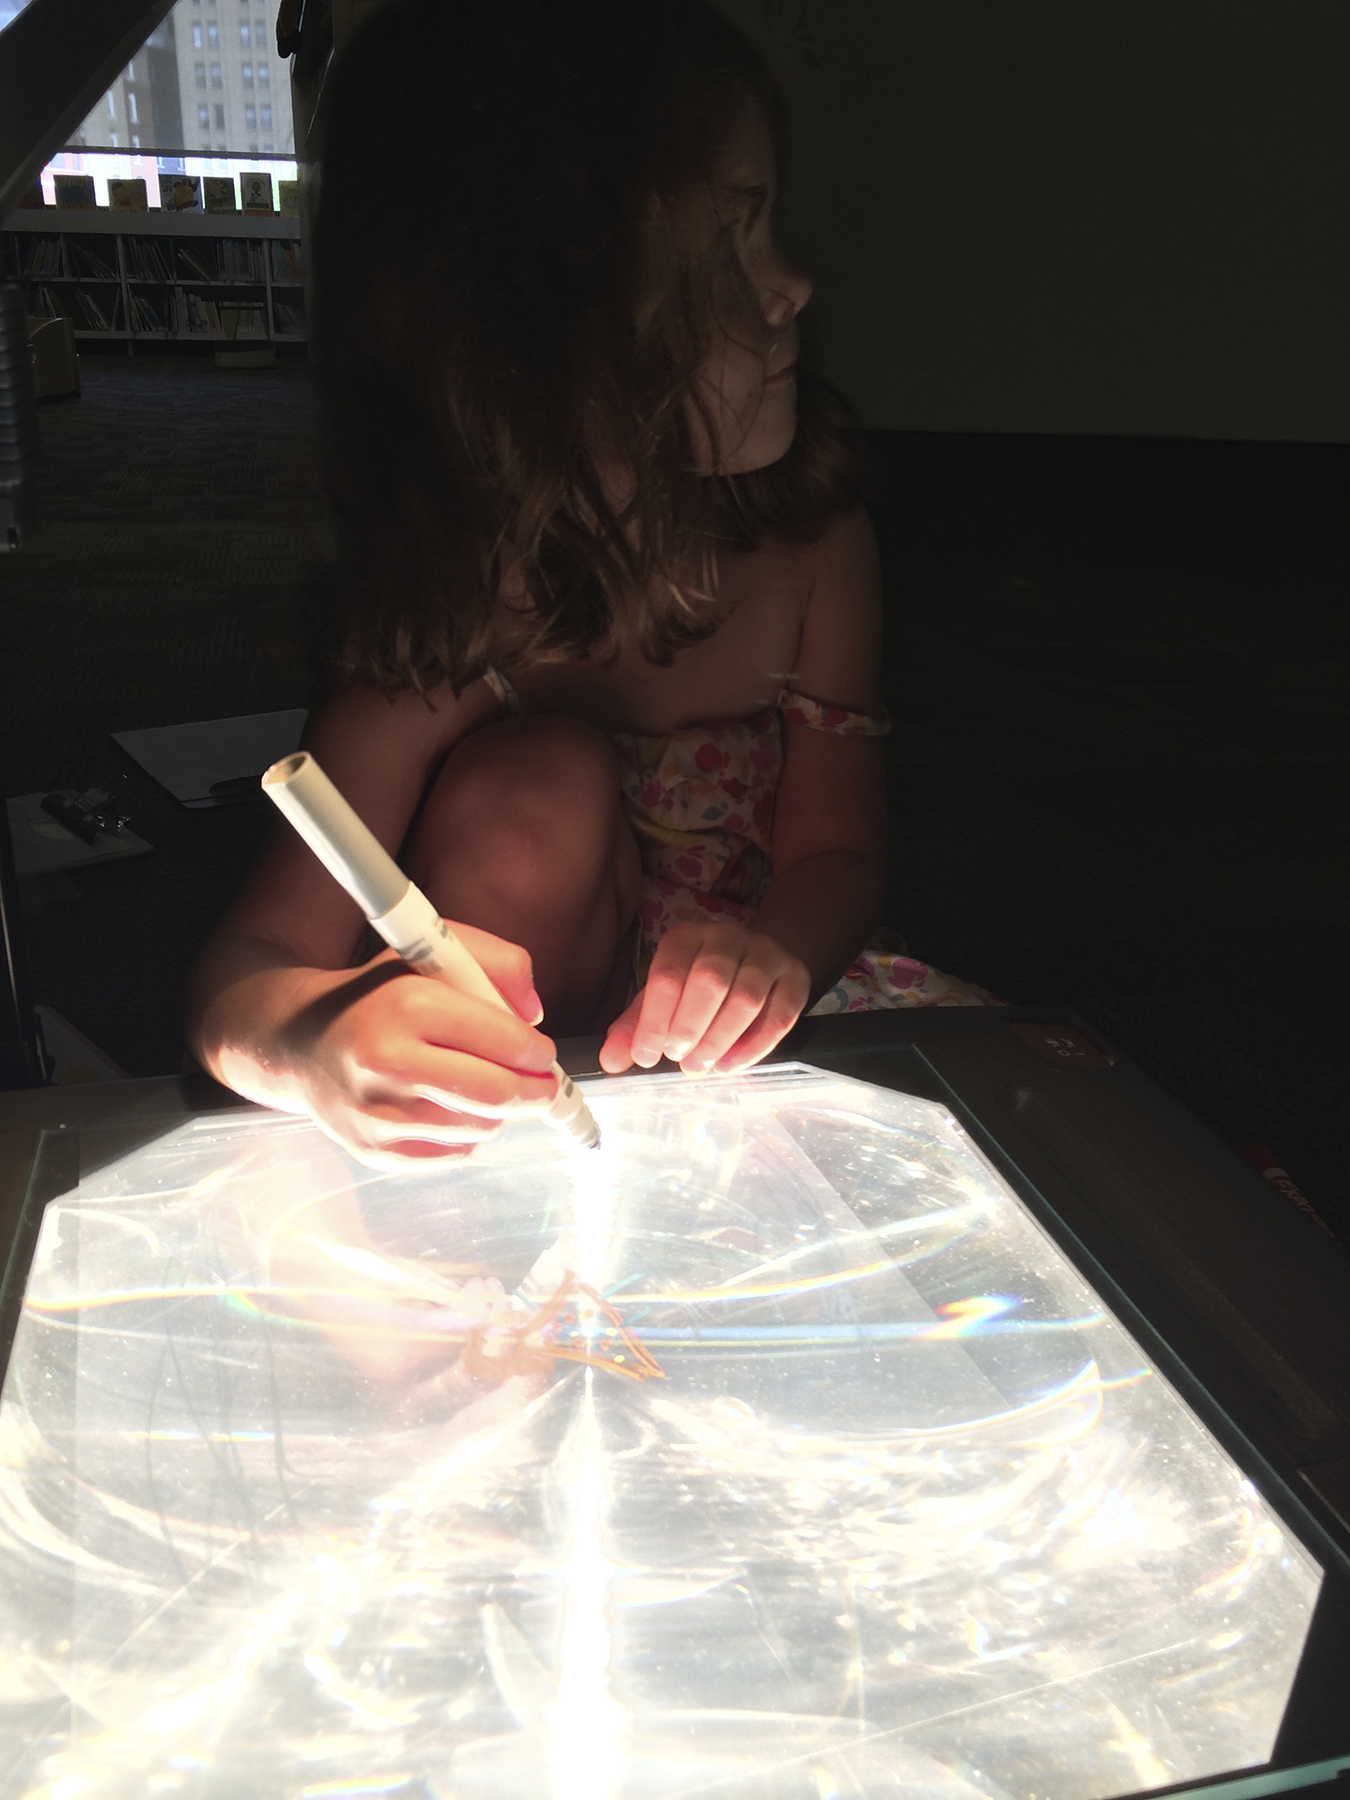 At the overhead projector, a child becomes the storyteller.